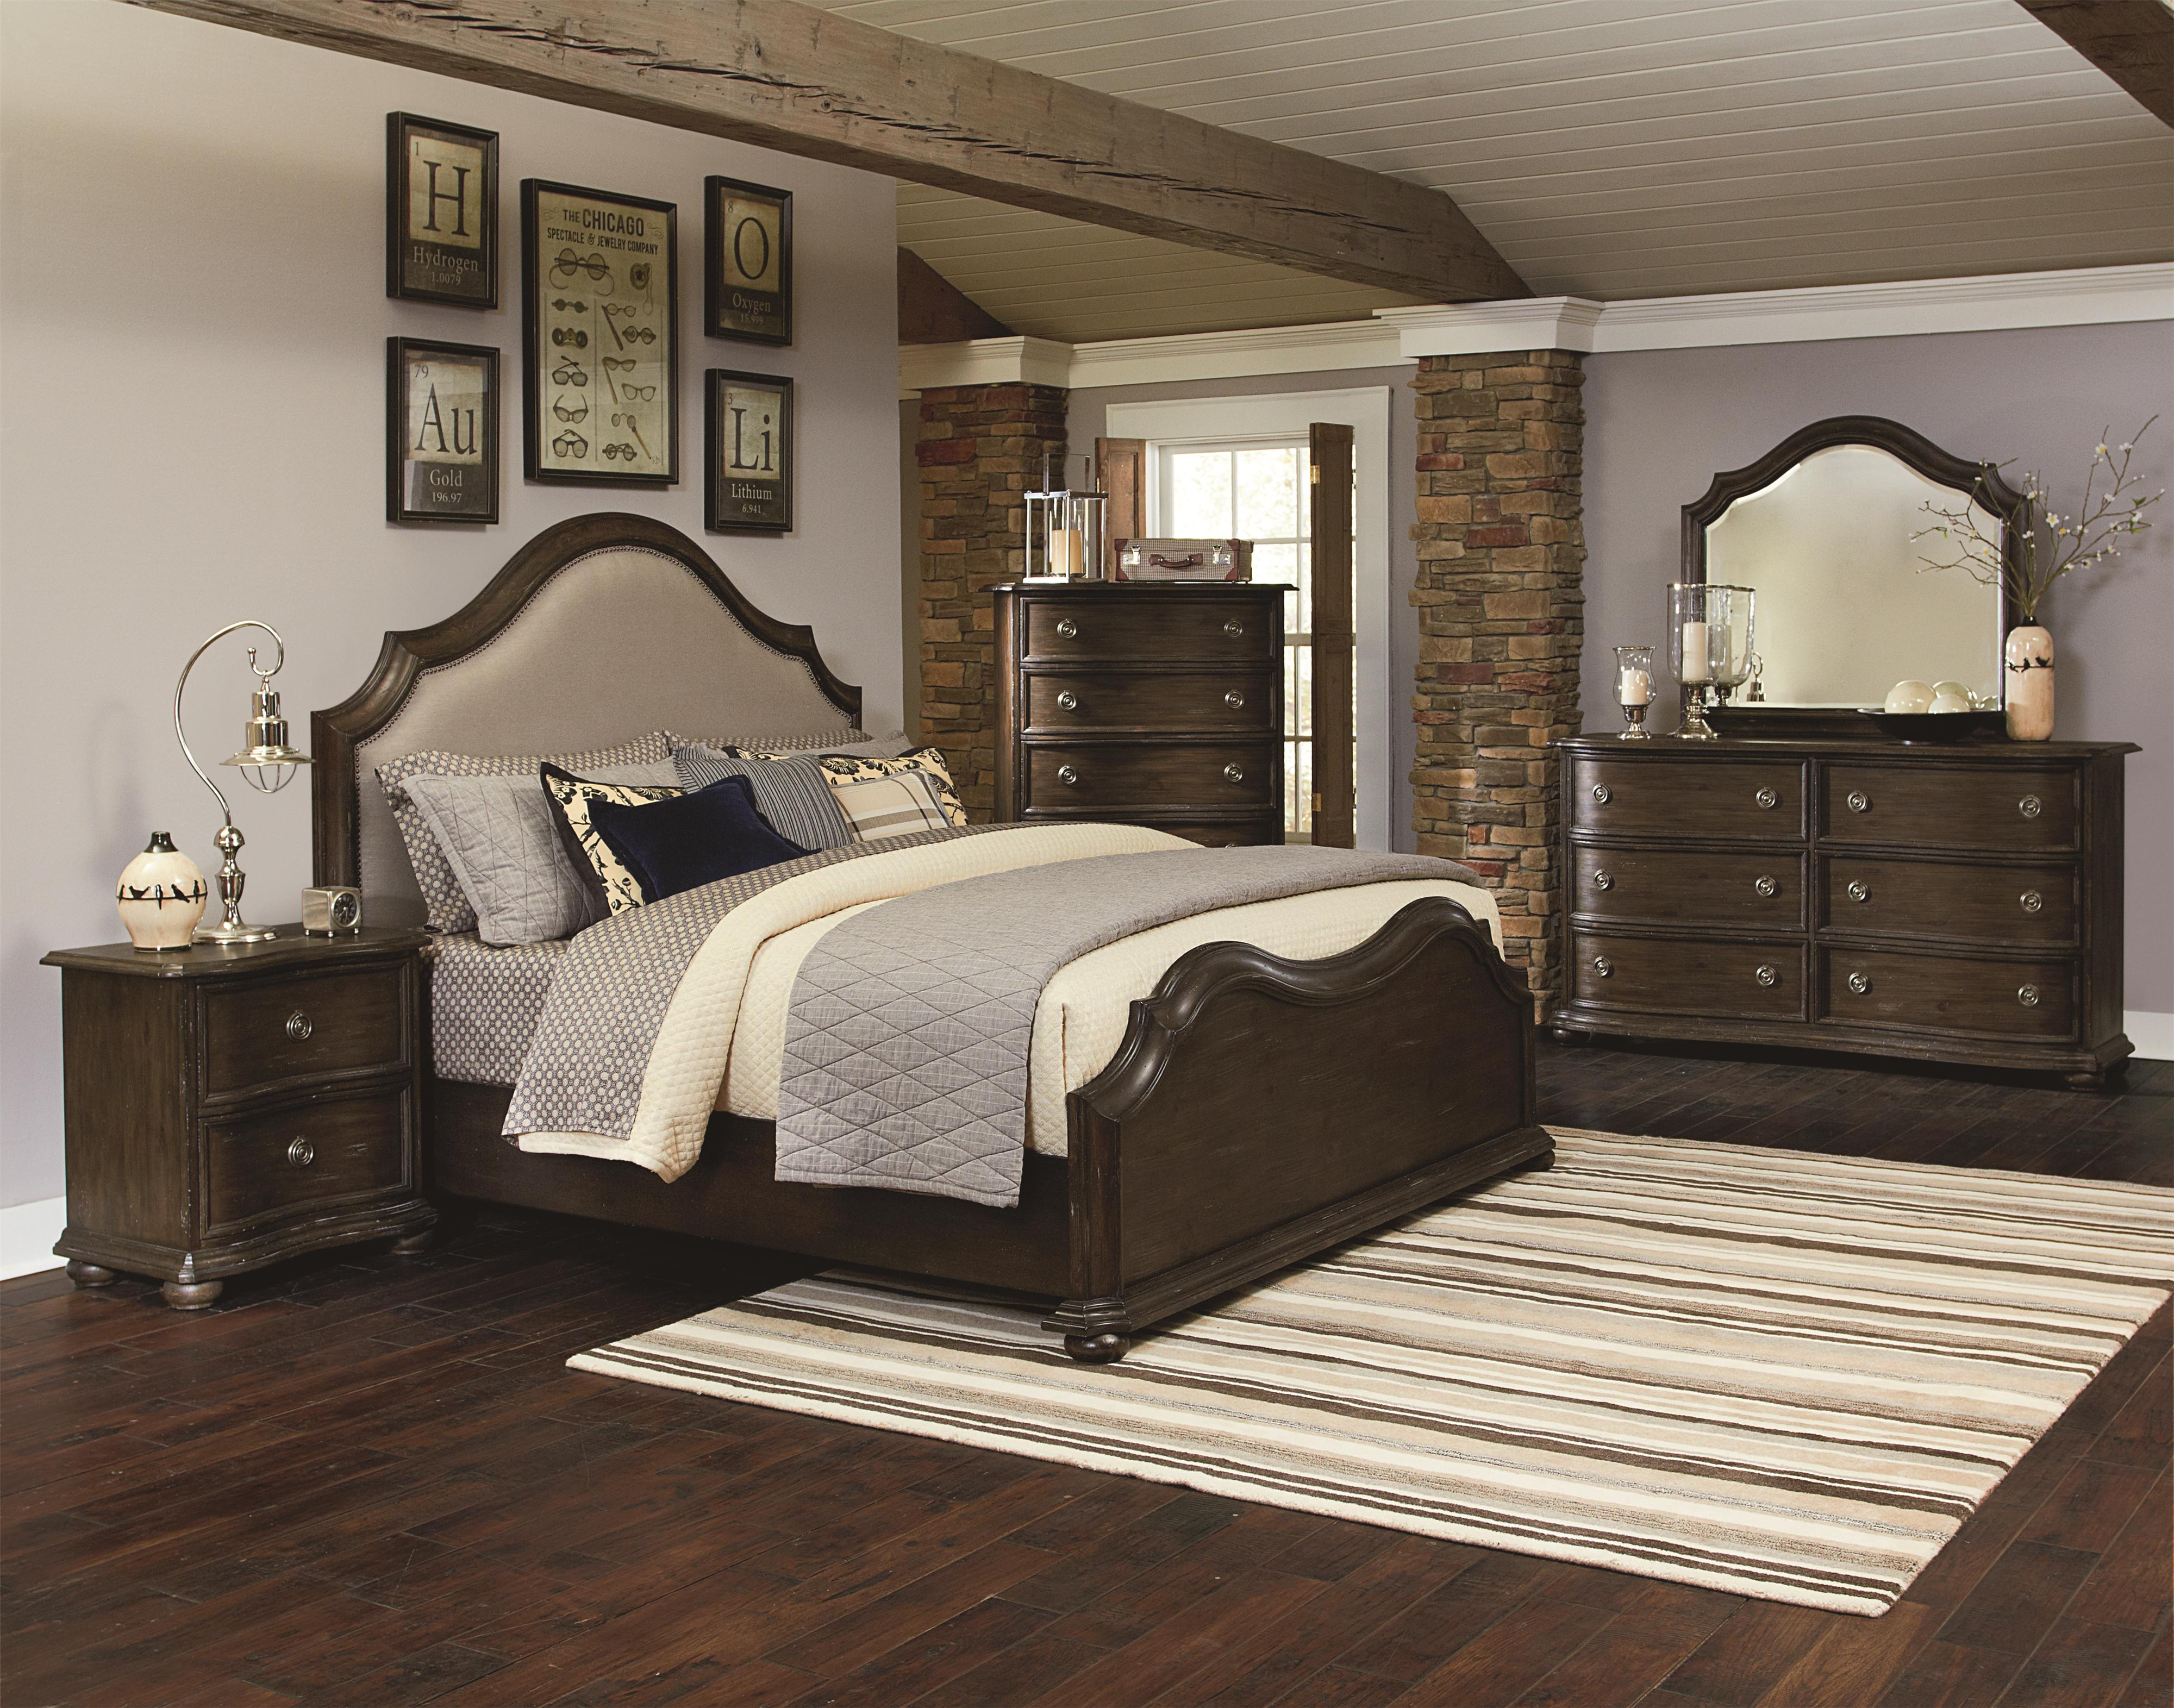 Magnussen home muirfield bedroom traditional bowed front - Bright house bedroom furniture ...